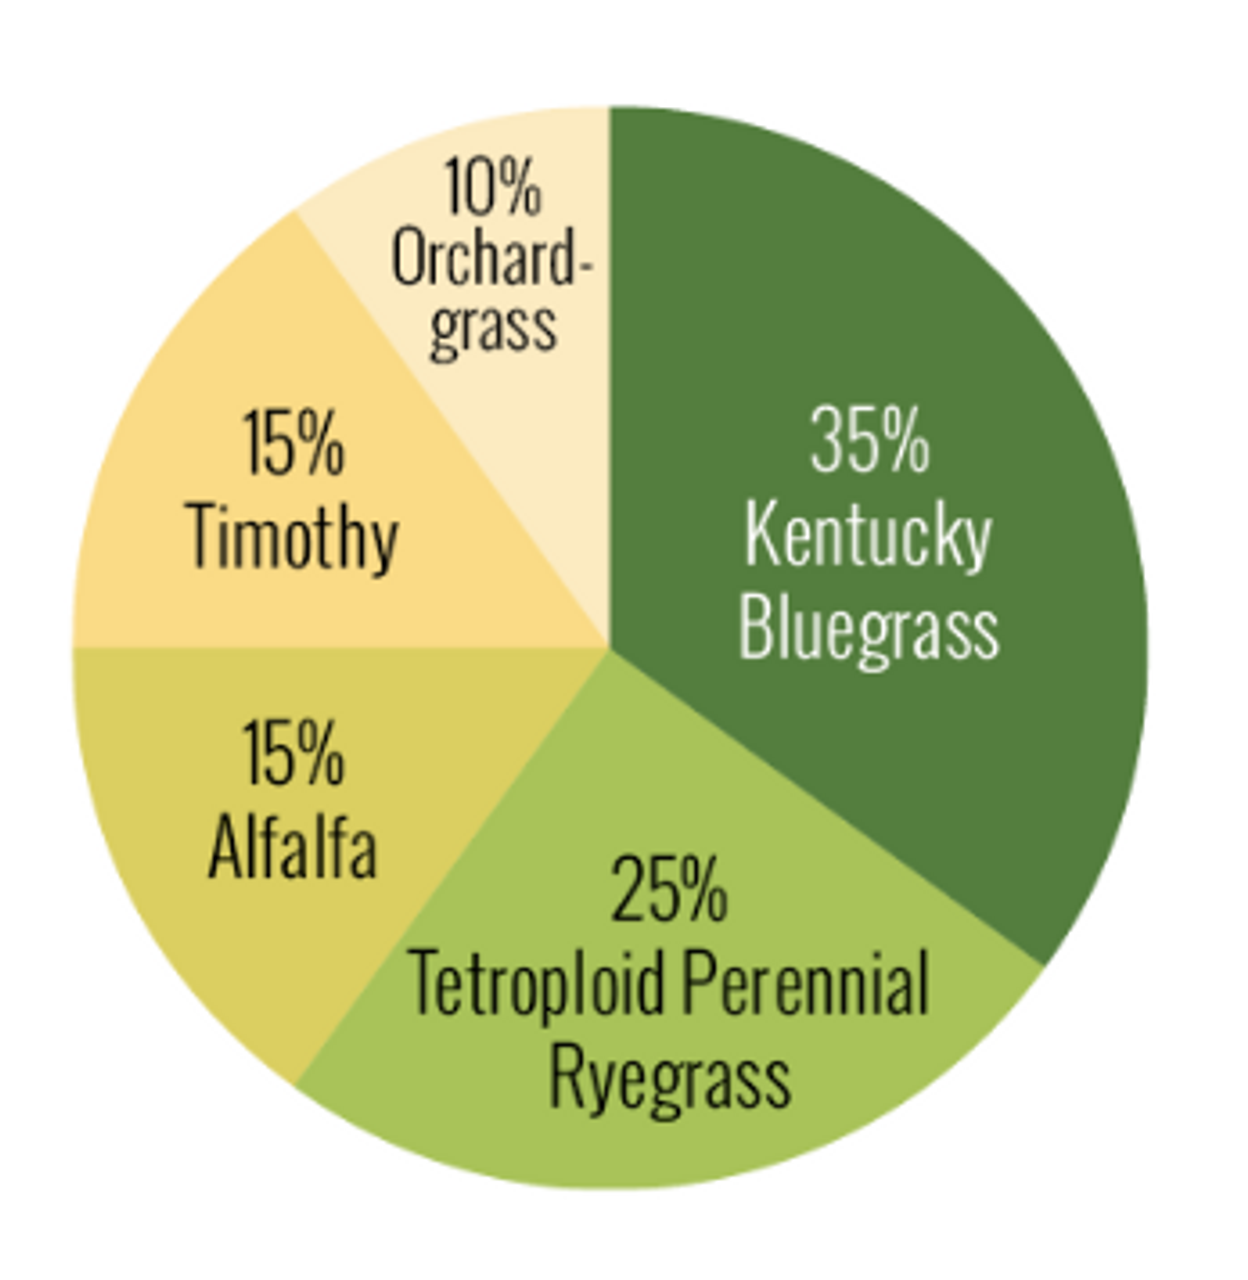 Breakdown of the types of grass seeds in the Horse Pasture Mix